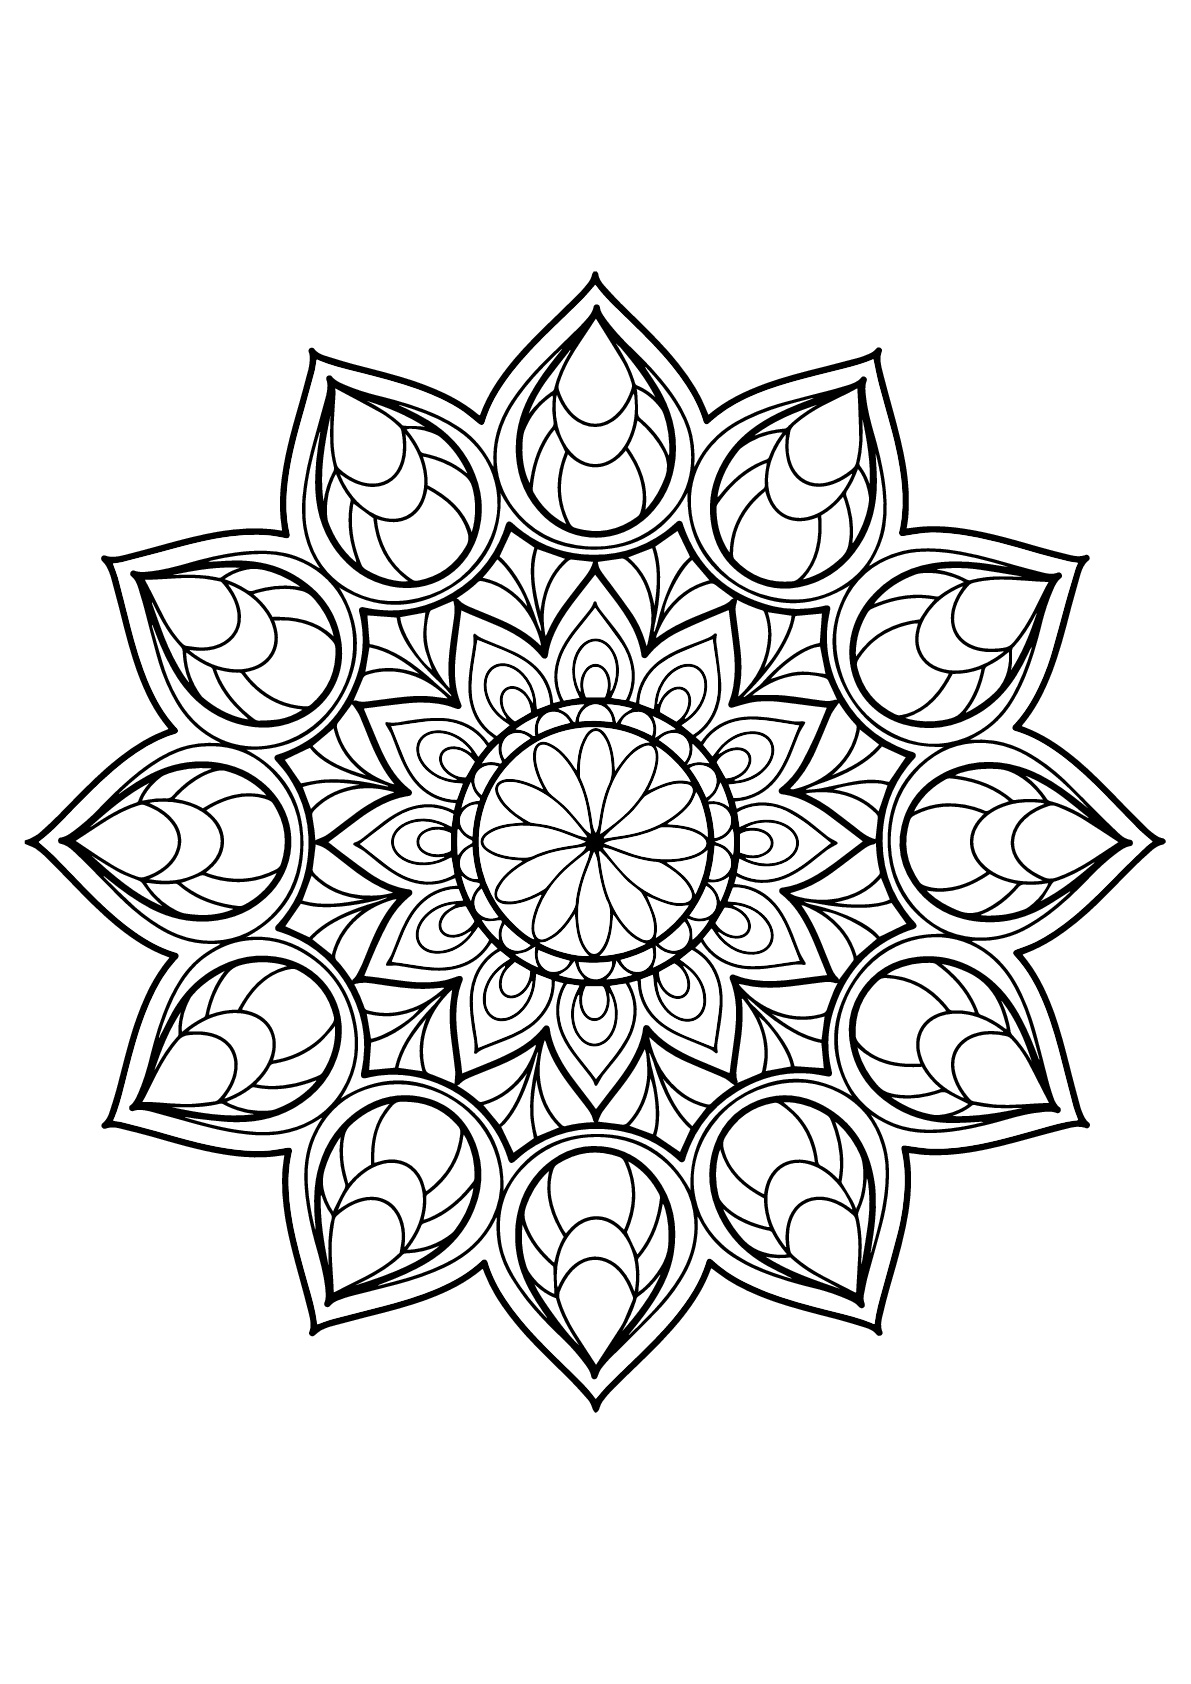 free coloring pages mandala writer39s within mandala coloring free mandala pages